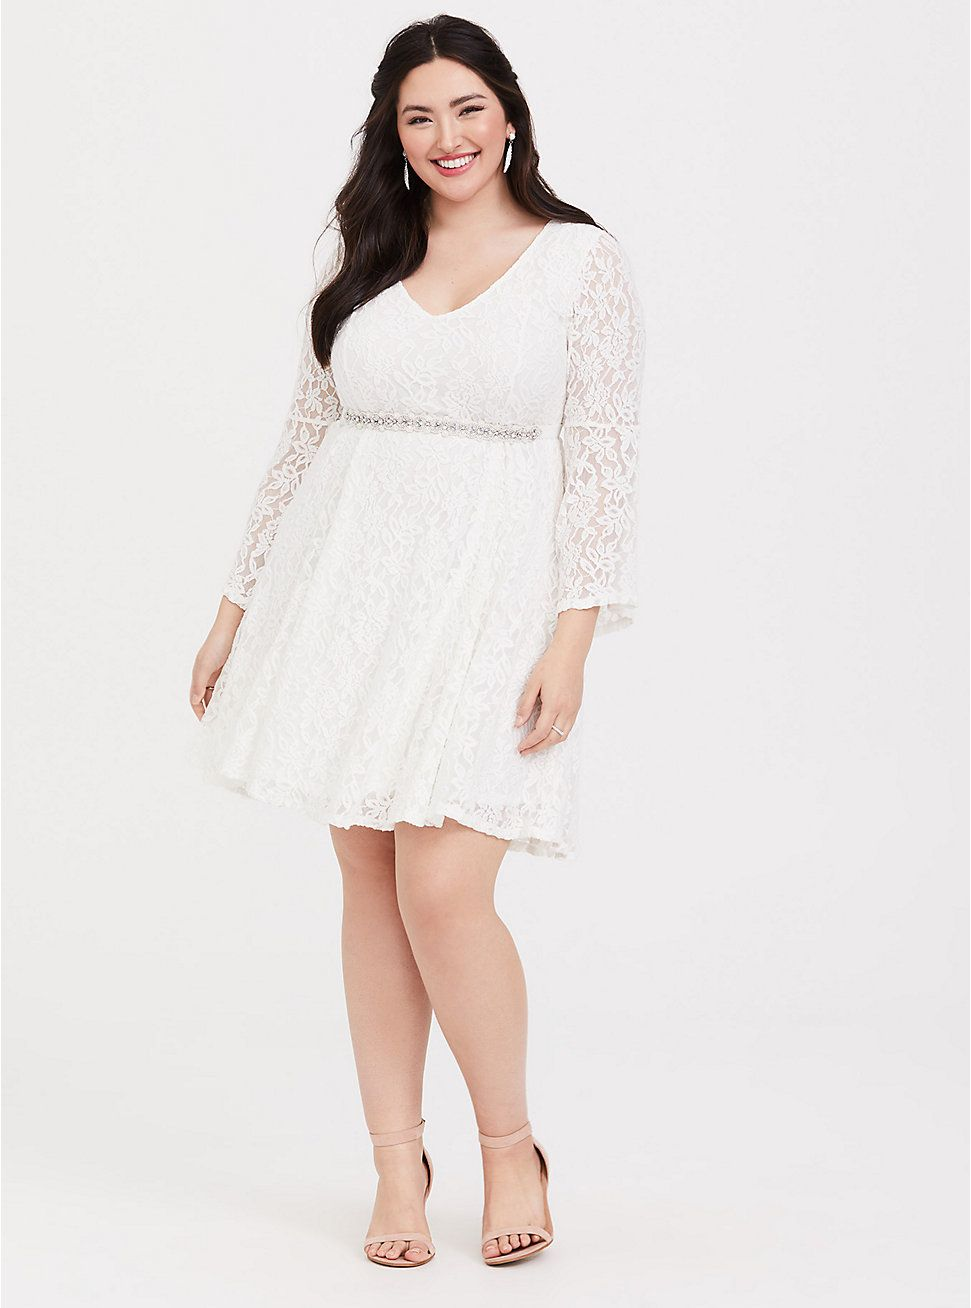 Ivory Lace Bell Sleeve Fluted Mini Dress White Lace Midi Dress Lace Summer Dresses Dresses [ 1308 x 971 Pixel ]